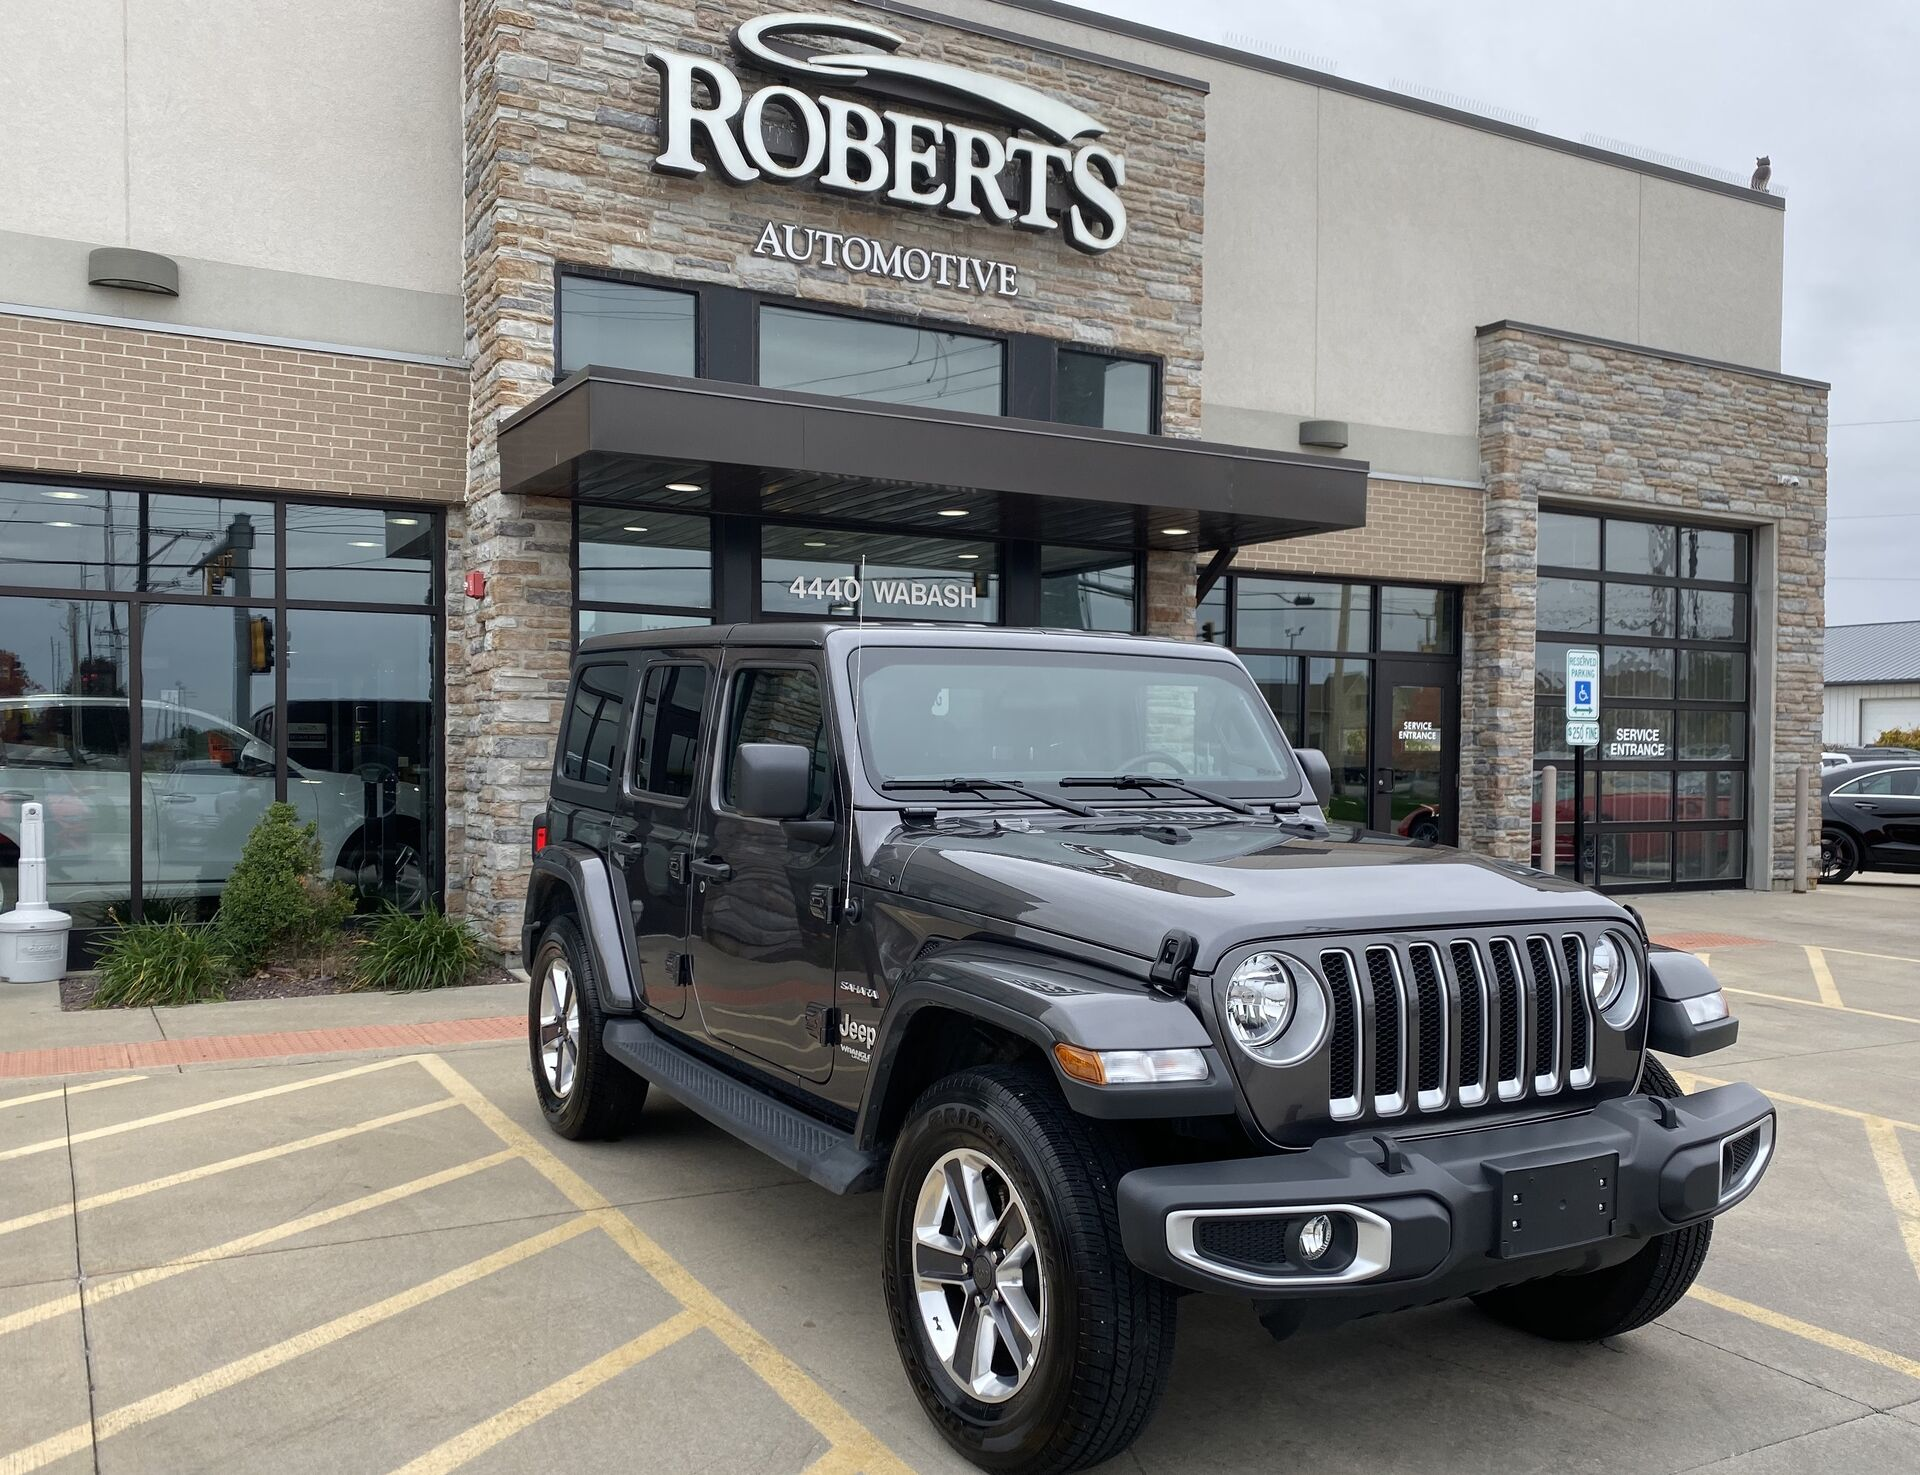 Used Car Dealership Springfield Il Roberts Automotive